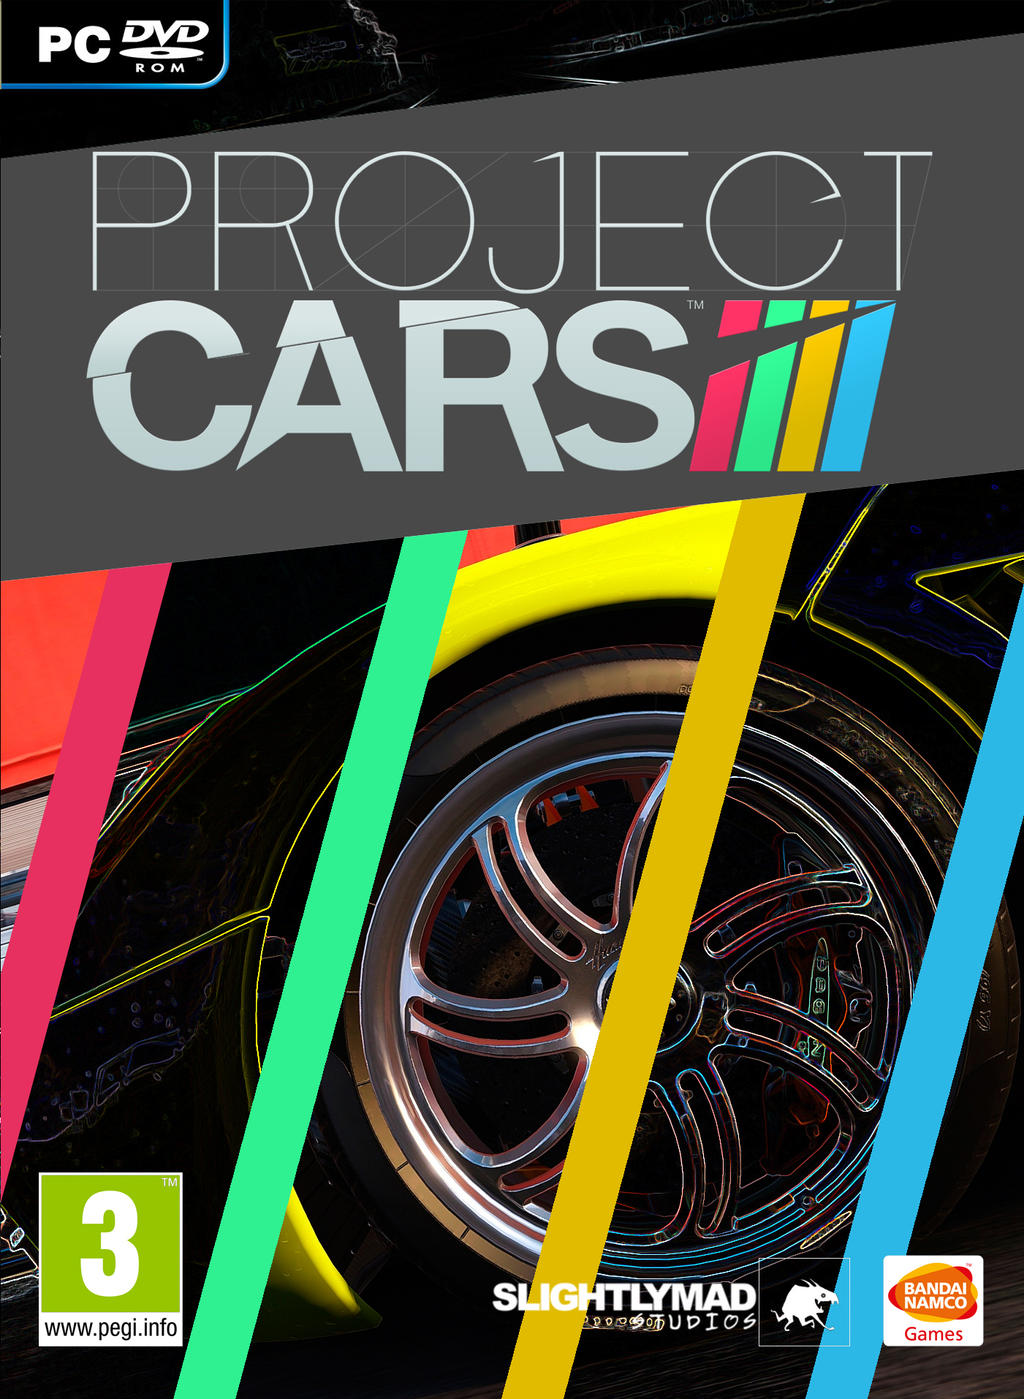 Image result for Project Car cover pc